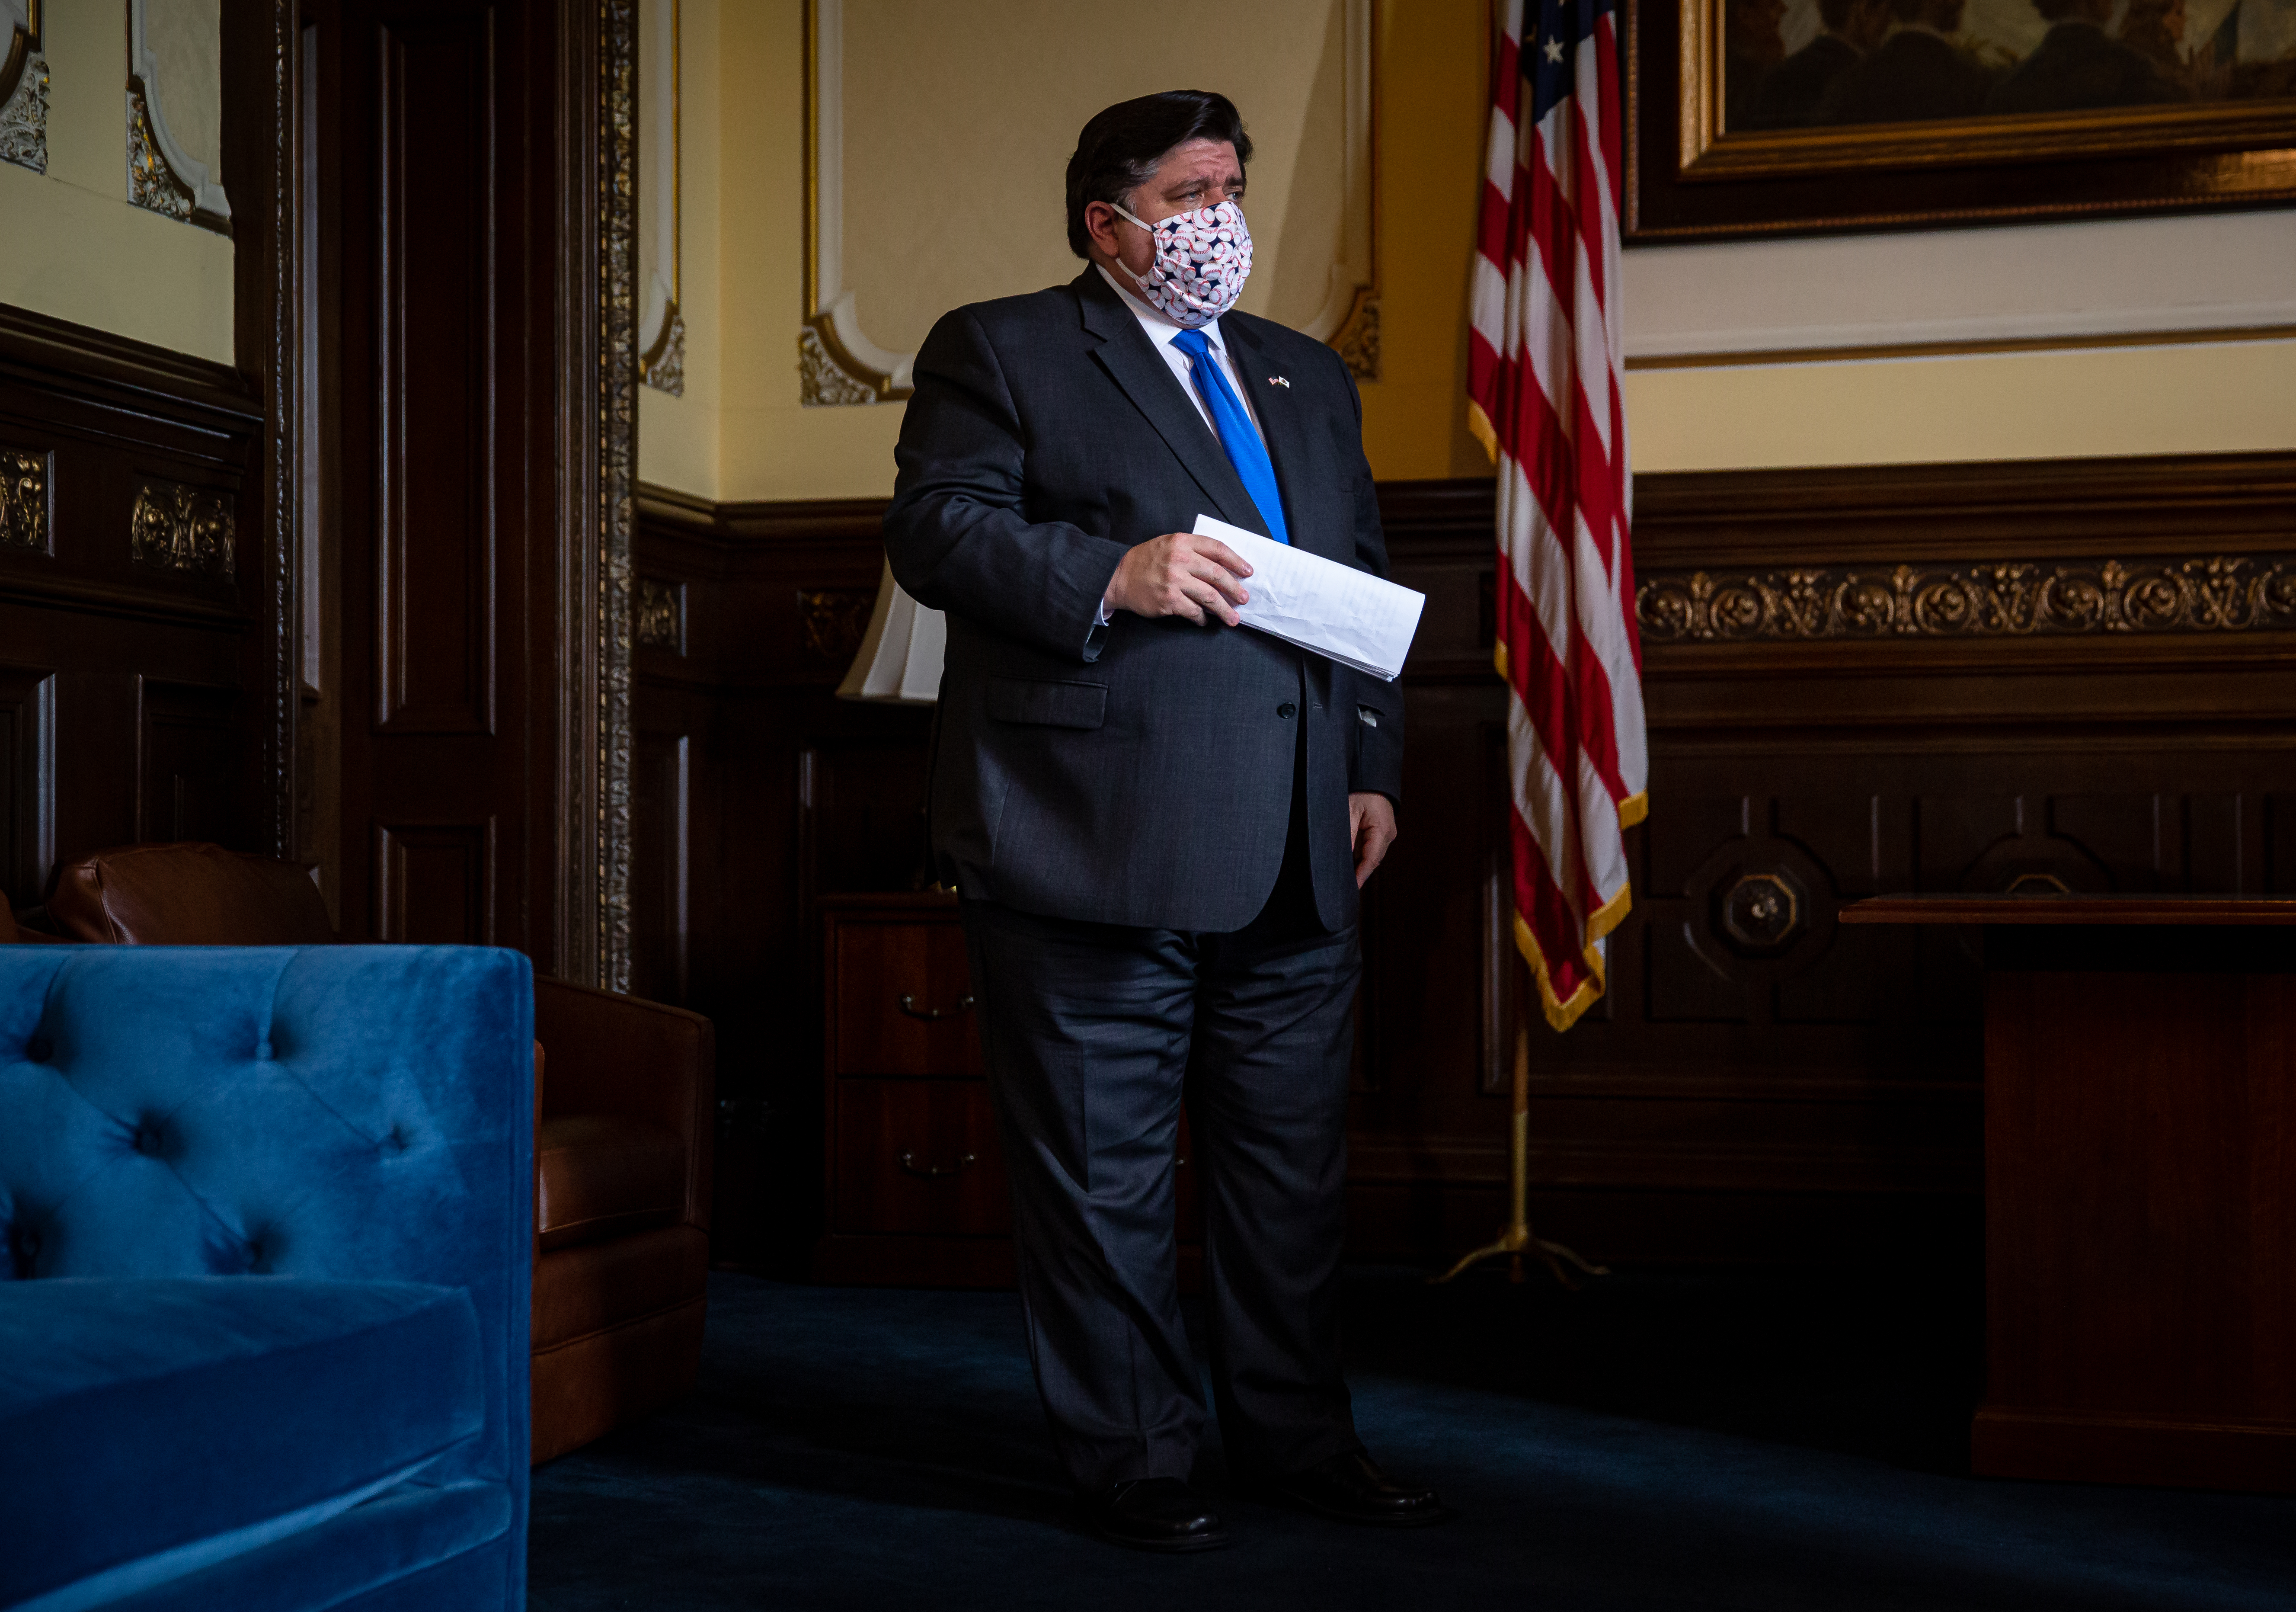 Gov. J.B. Pritzker waits to speak during his daily briefing on the COVID-19 pandemic from his office at the Illinois State Capitol in Springfield on Friday.